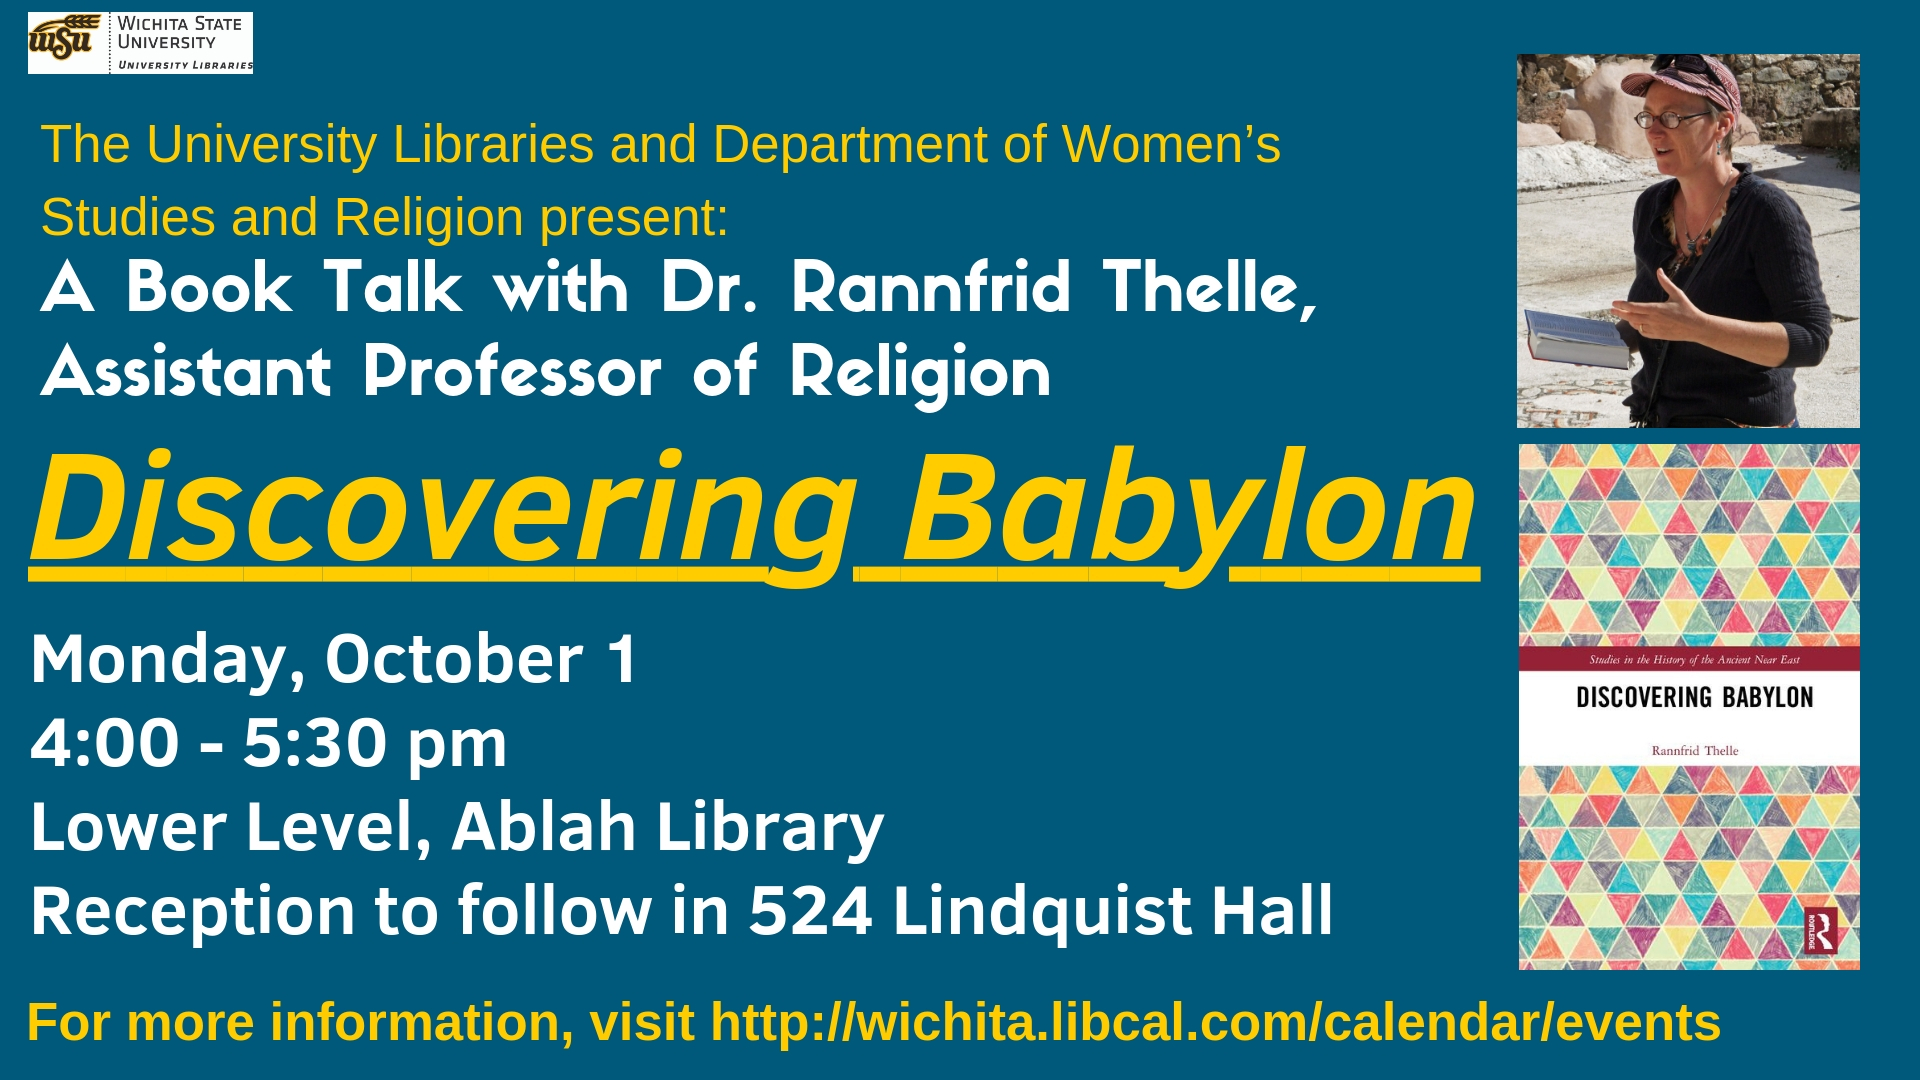 A Book Discussion with Dr. Rannfrid Thelle: Discovering Babylon